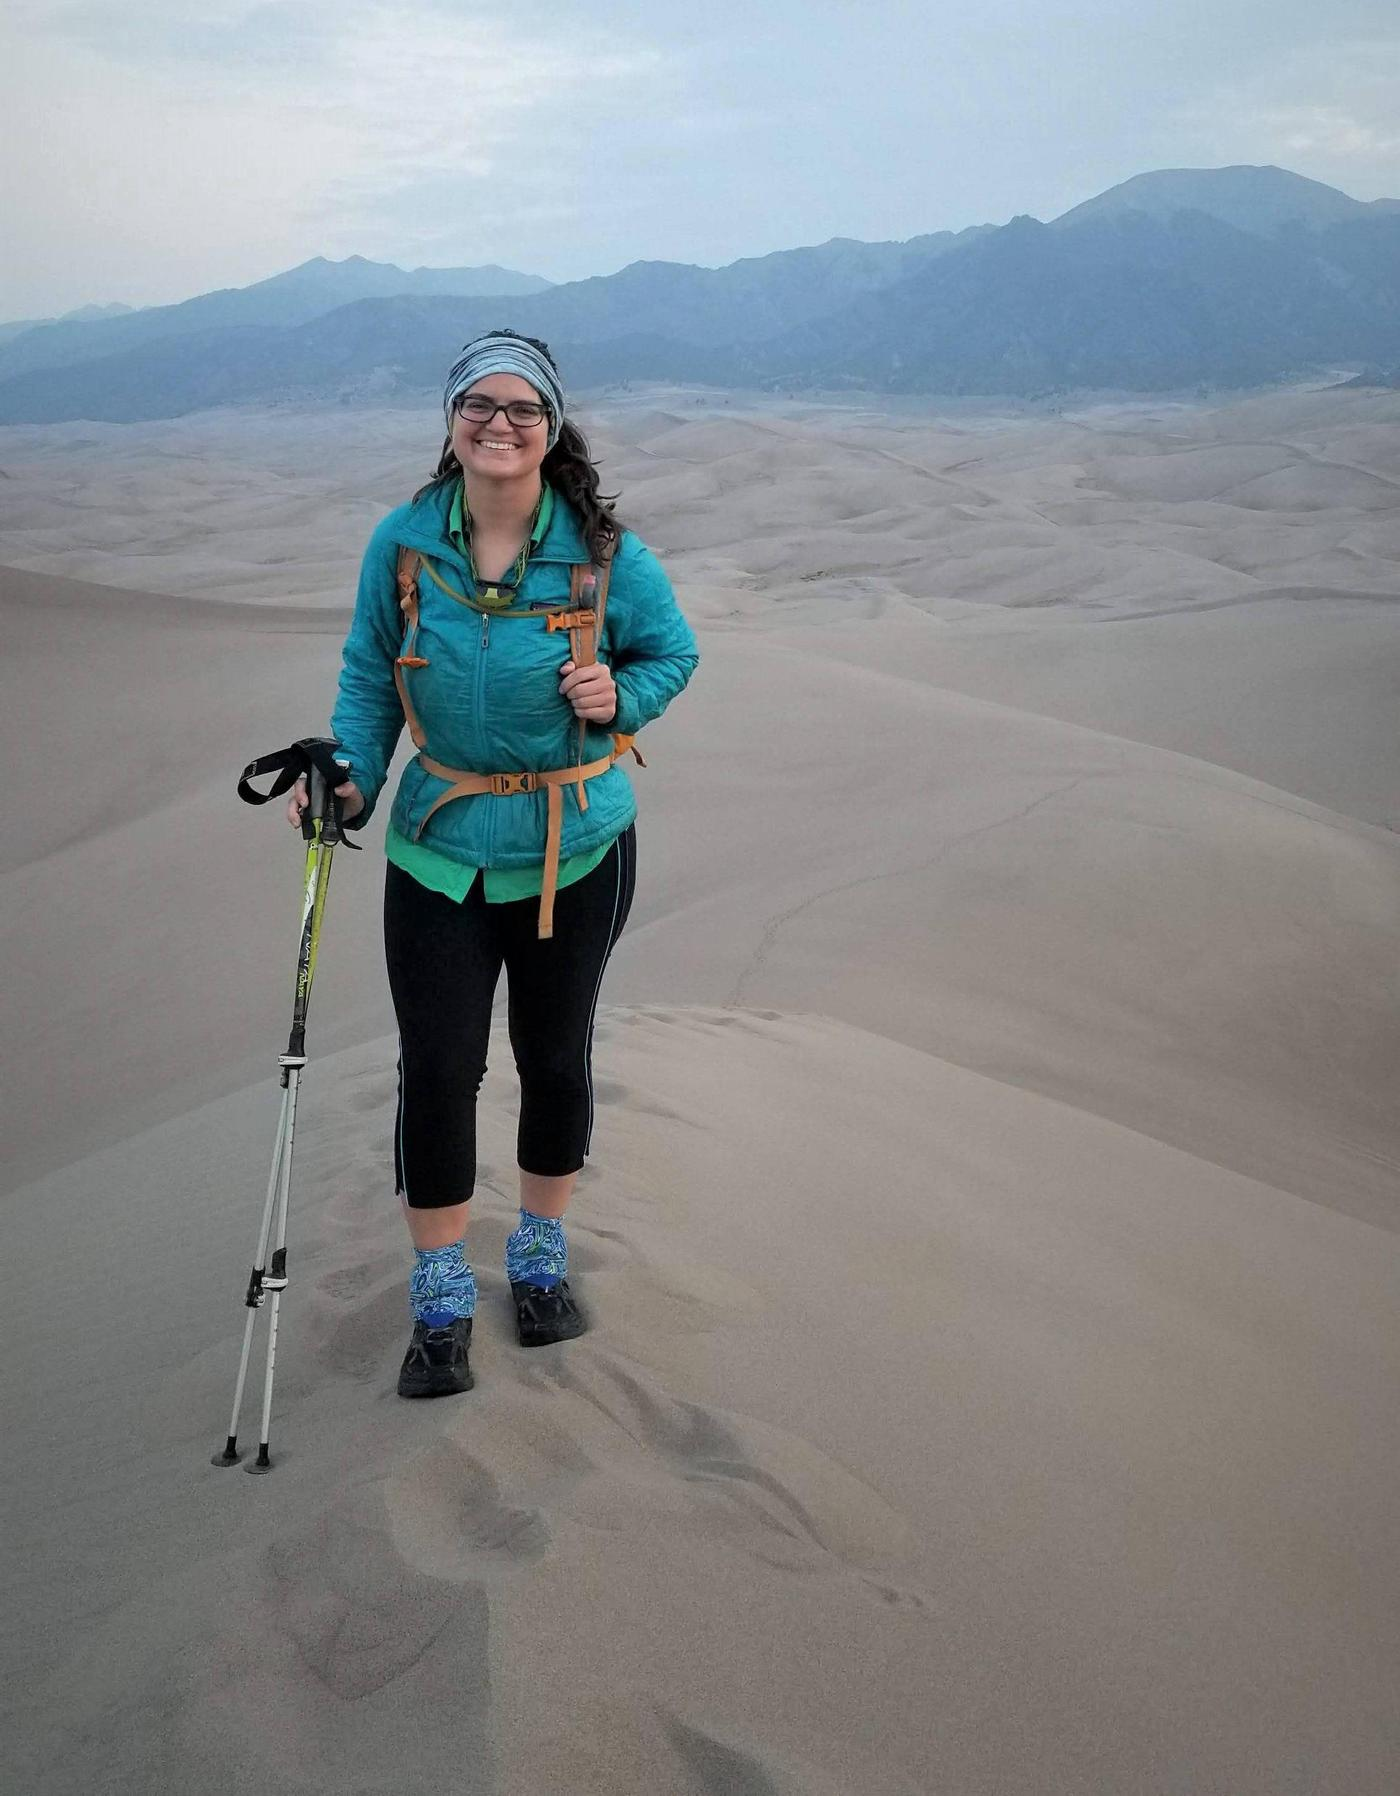 Backpacker on the dunes.A backpacker poses at the top of the high ridge line just outside the Day Use Area before entering the Dunes Backcountry in the summer of 2020.